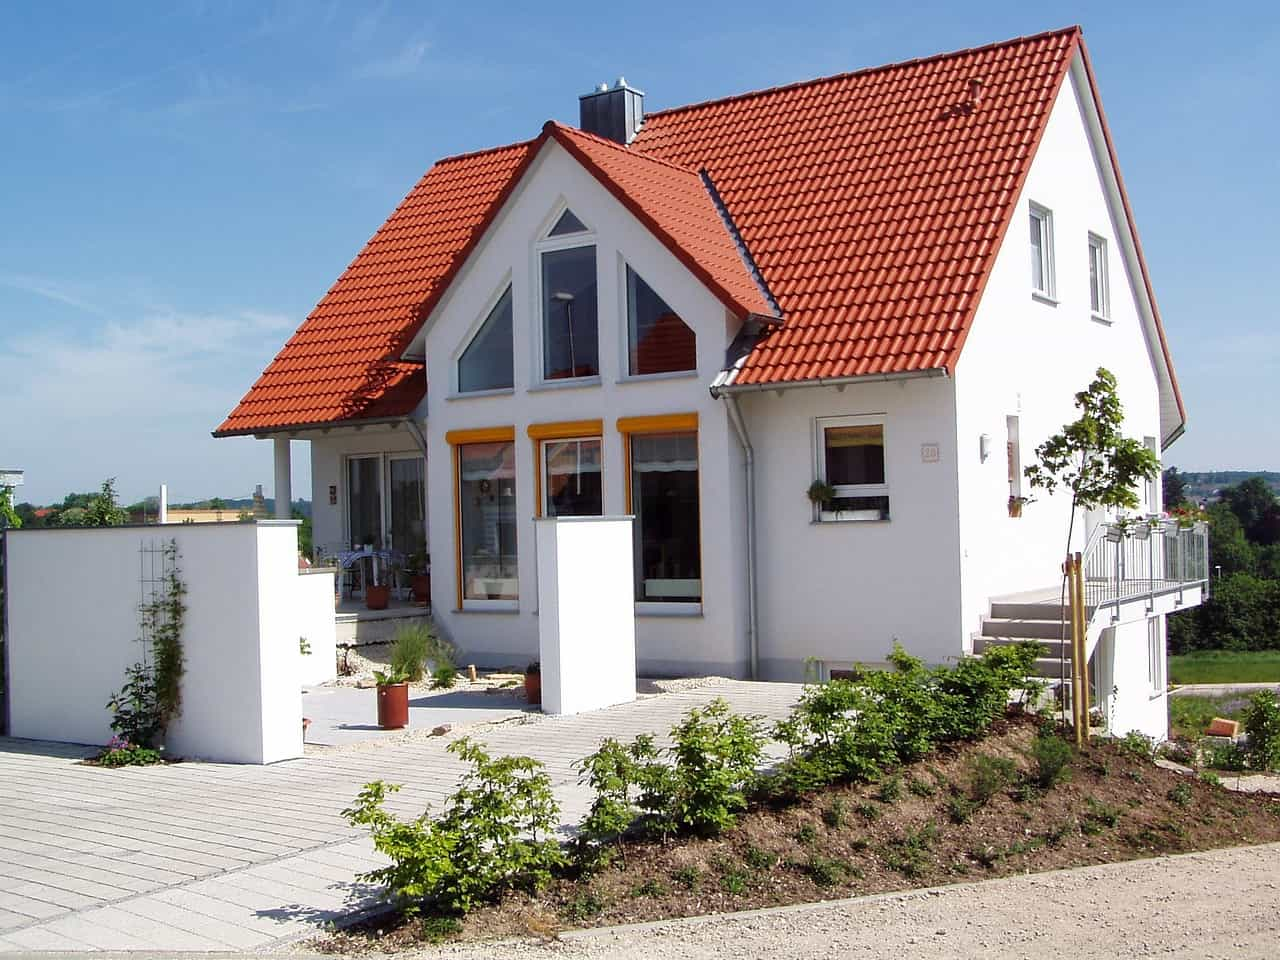 Choosing the Best Roofing Option for a Tiny Home. Nice red ceramic shingles at the top of the white facaded private house